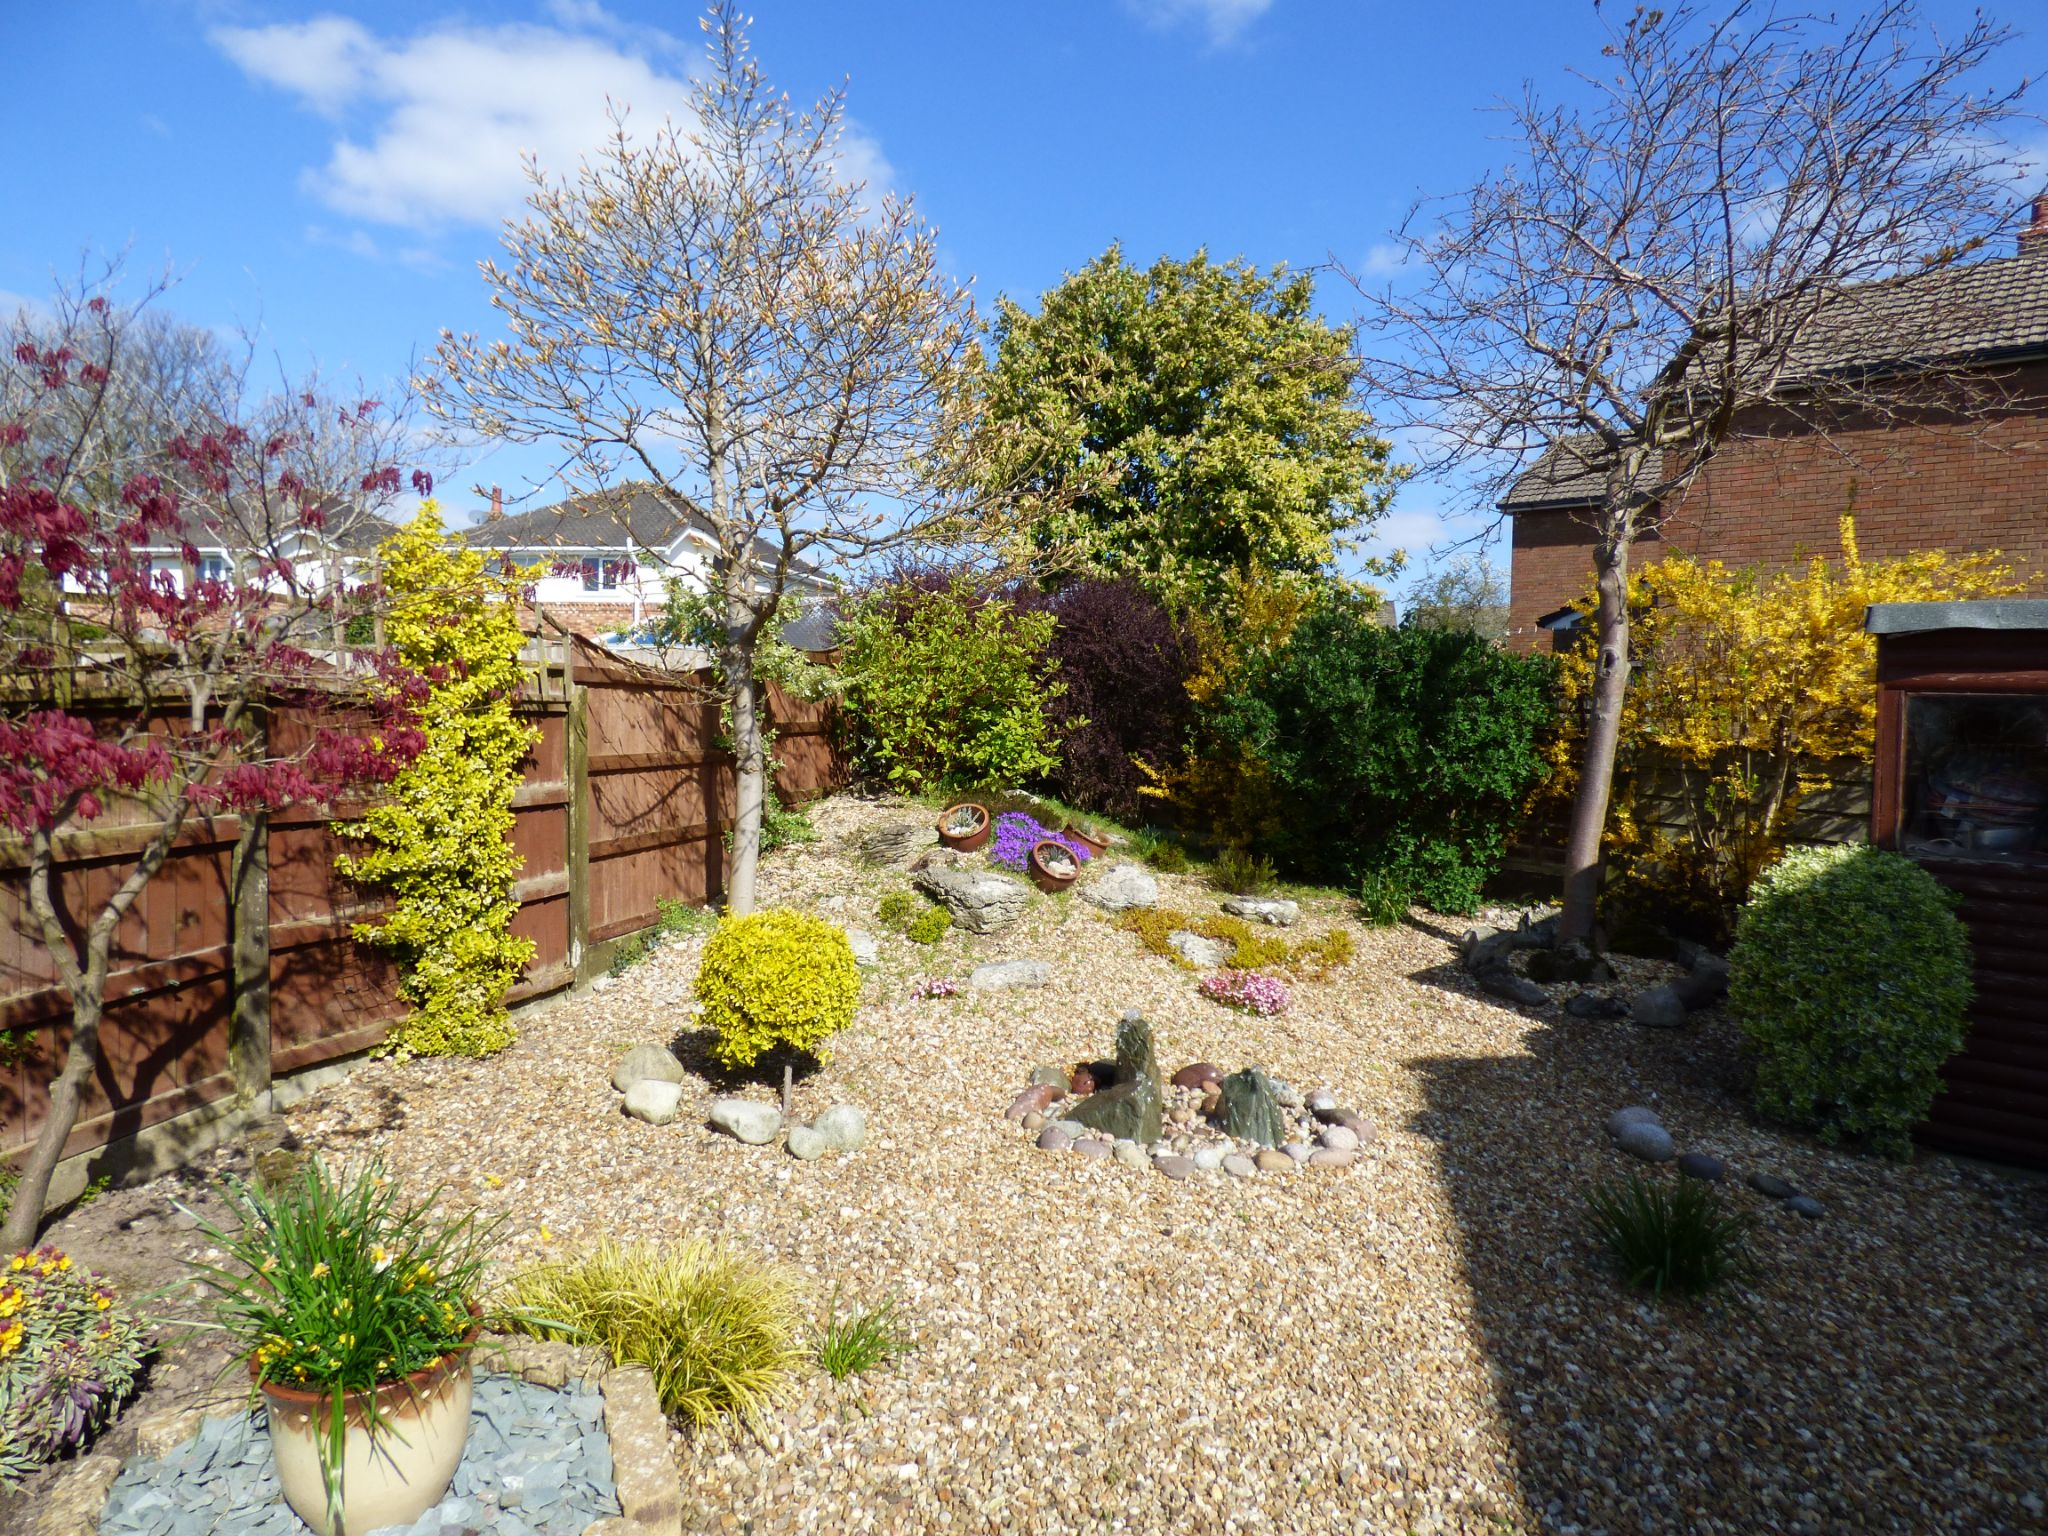 3 Bedroom Detached House For Sale - Rear Garden View 2